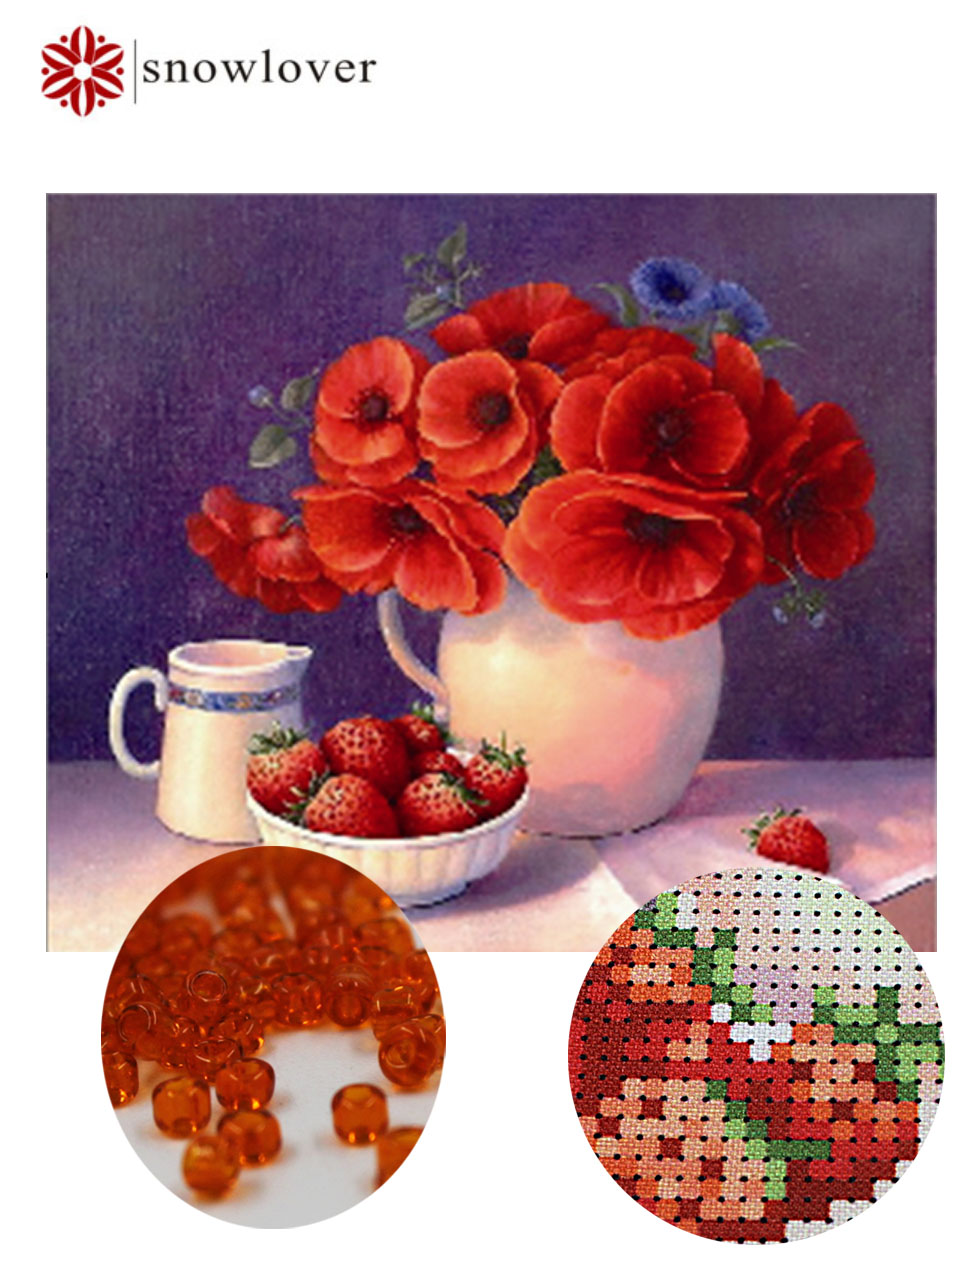 Snowlover,beads,Needlework,DIY bead Cross stitch ,Embroidery kits cross stitch,Precise Printed floral pattern,christmas gifts